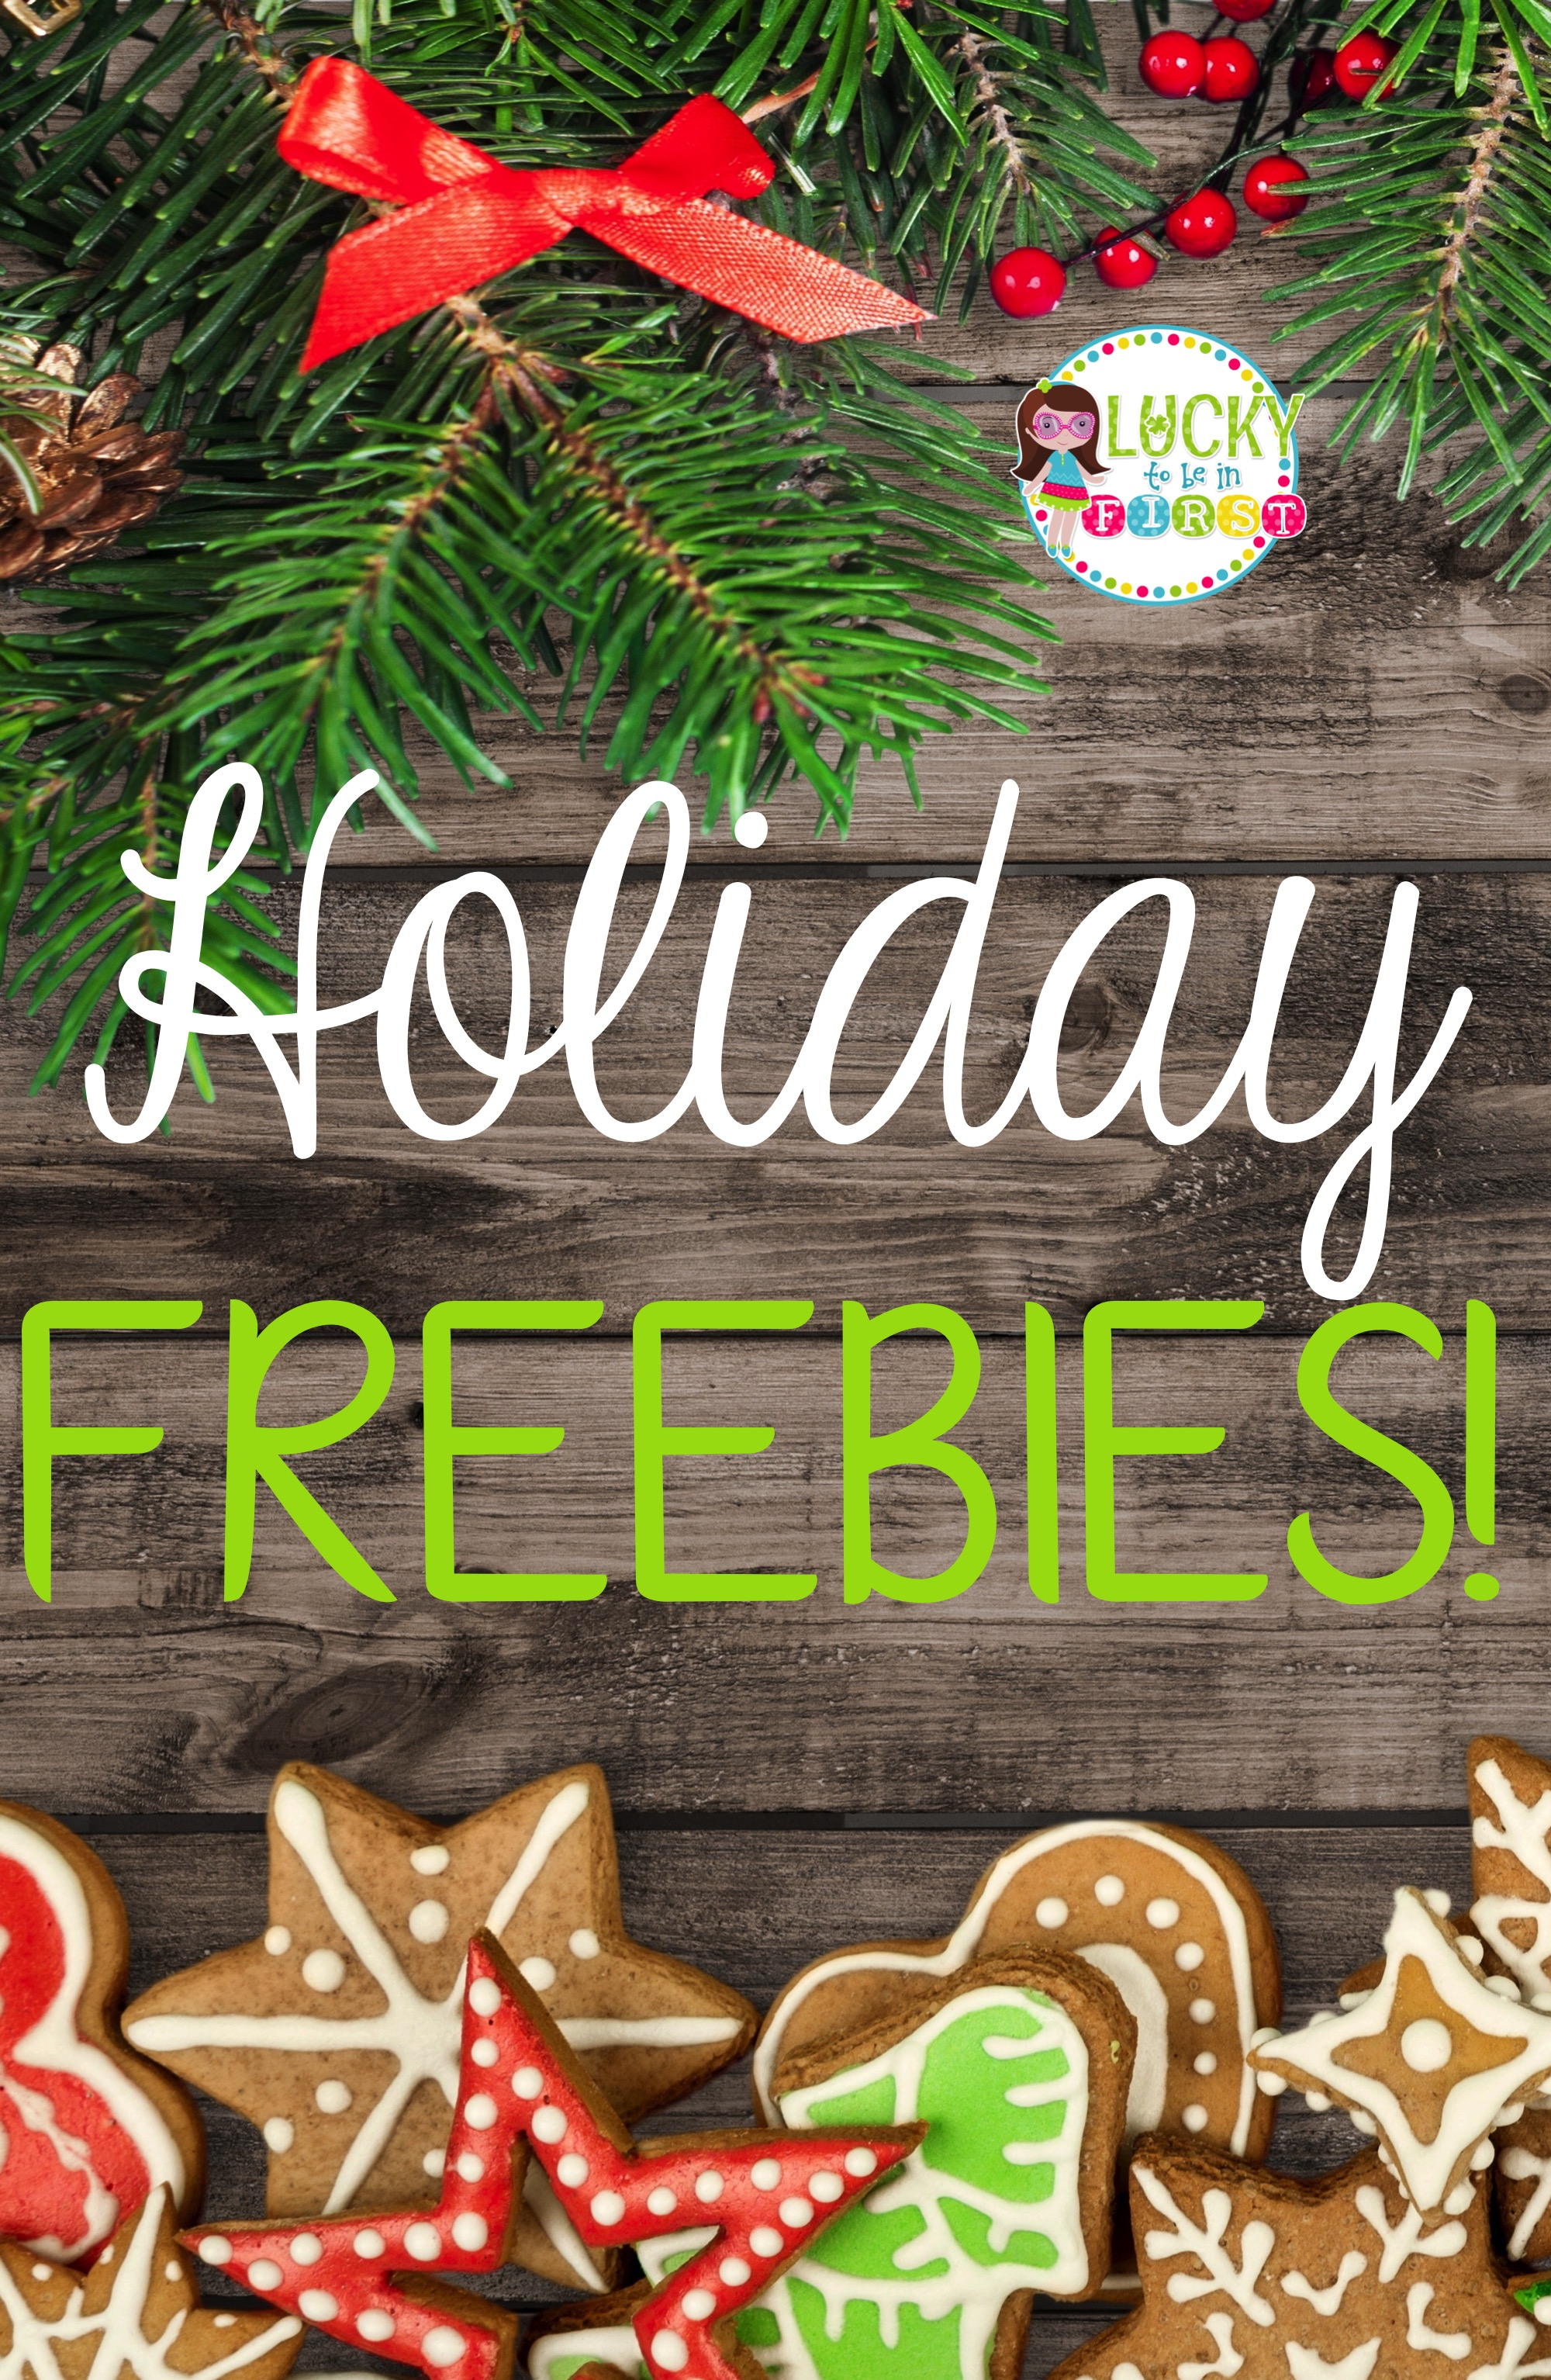 Fa-La-La-La-FREEBIES!  Help make your December a little easier! Snag a BUNCH of Holiday FREEBIES over on the blog!